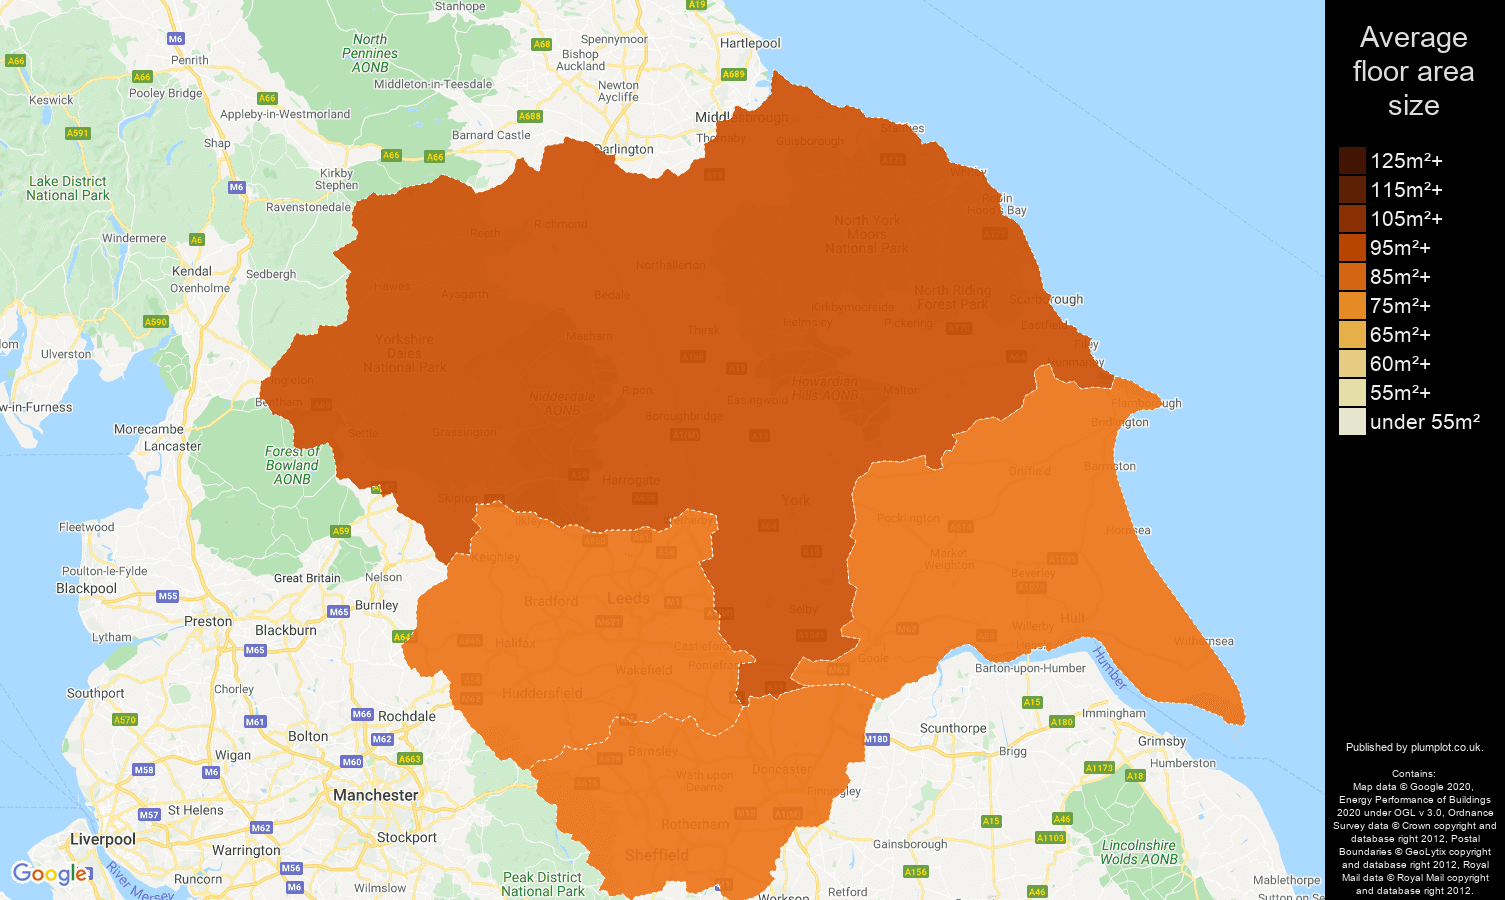 Yorkshire map of average floor area size of houses